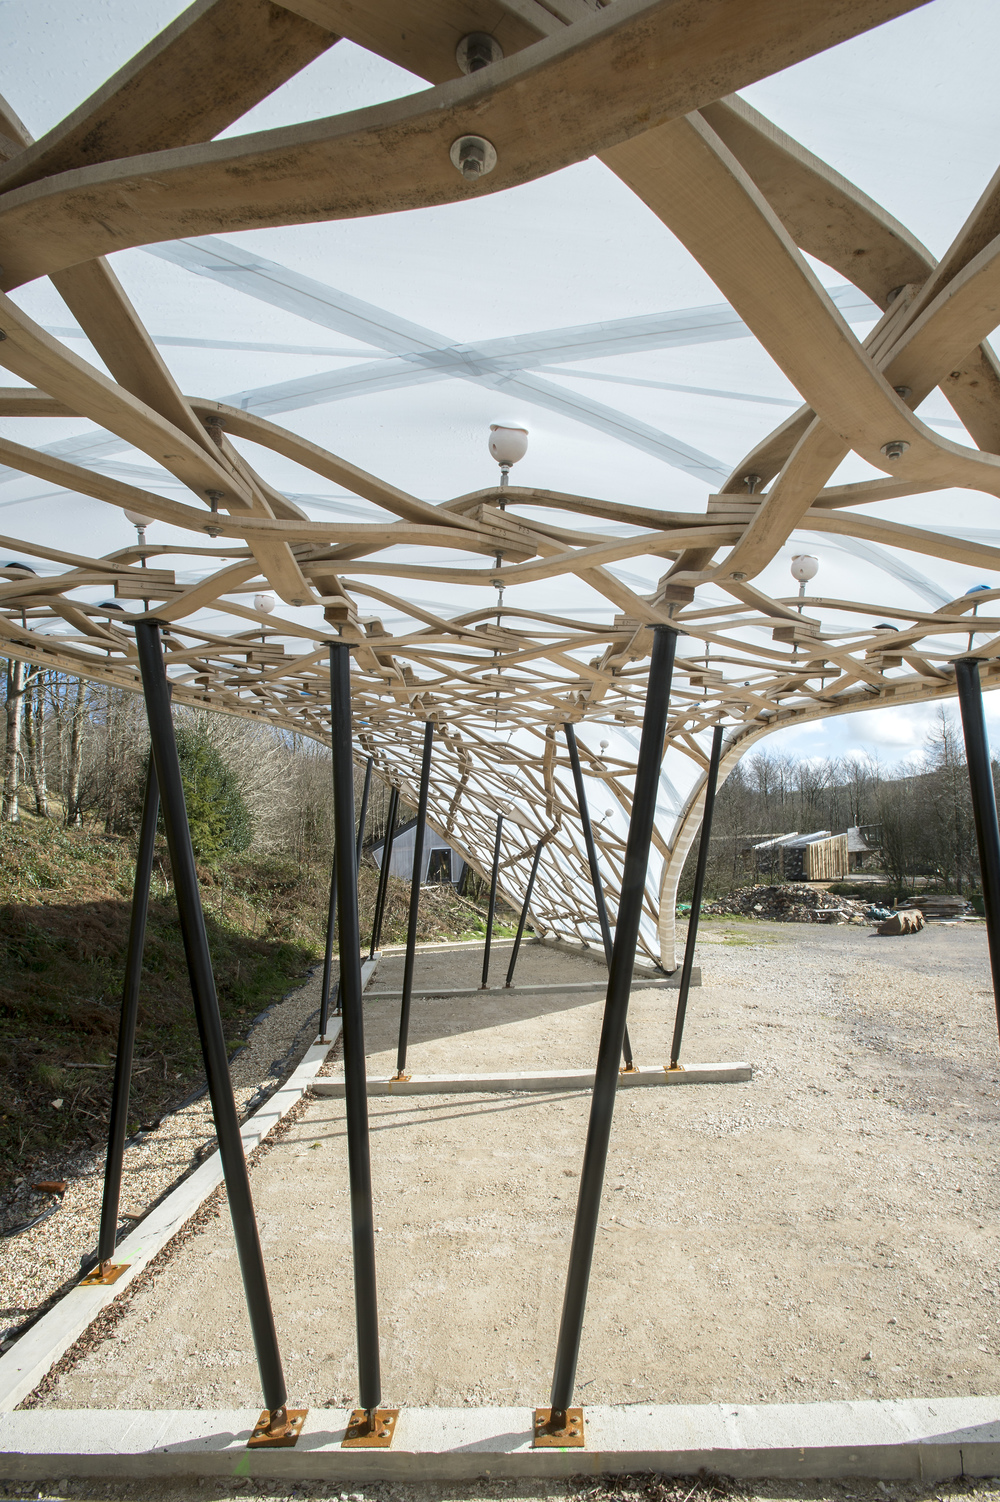 Hooke_Park_Design_&_Make_Timber_Seasoning_Shelter_©Valerie_Bennett_2014_02_22_0121.jpg